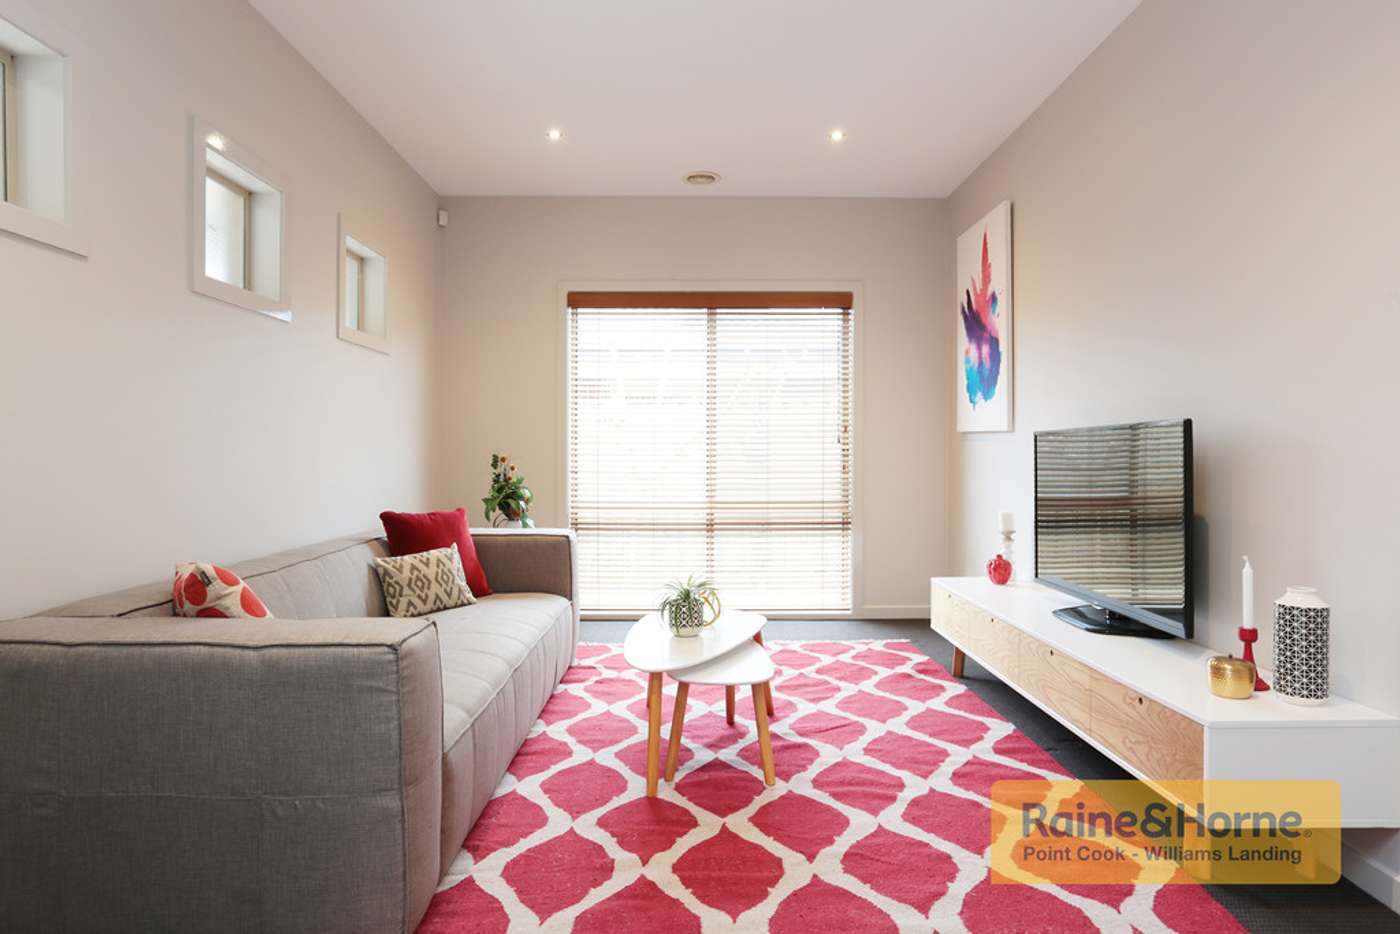 Seventh view of Homely house listing, 13 Alison Street, Truganina VIC 3029